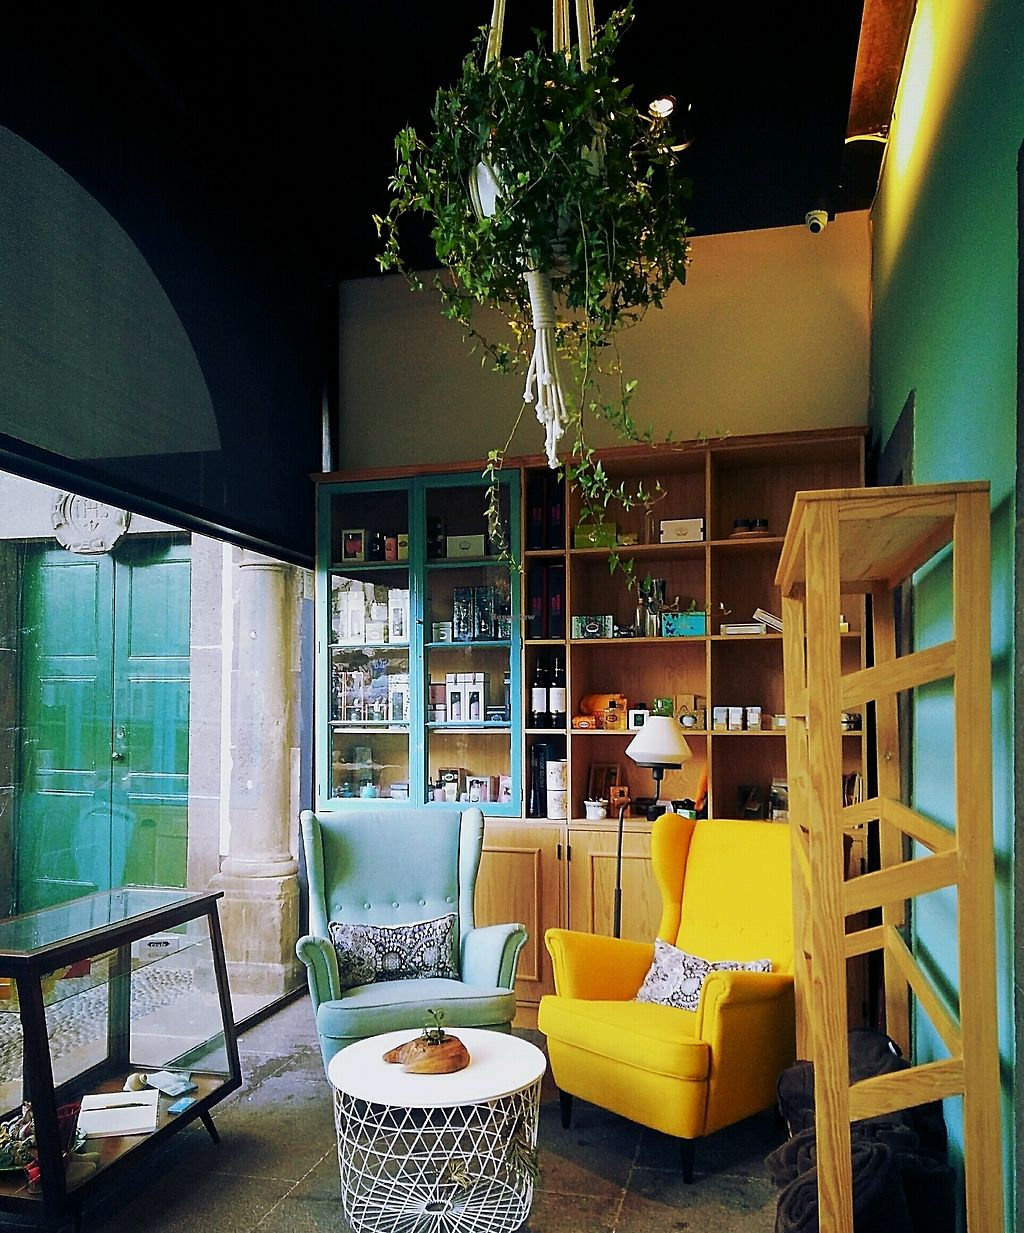 """Photo of Museu Cafe  by <a href=""""/members/profile/Letitia"""">Letitia</a> <br/>Cafe deco <br/> December 12, 2017  - <a href='/contact/abuse/image/95380/334990'>Report</a>"""